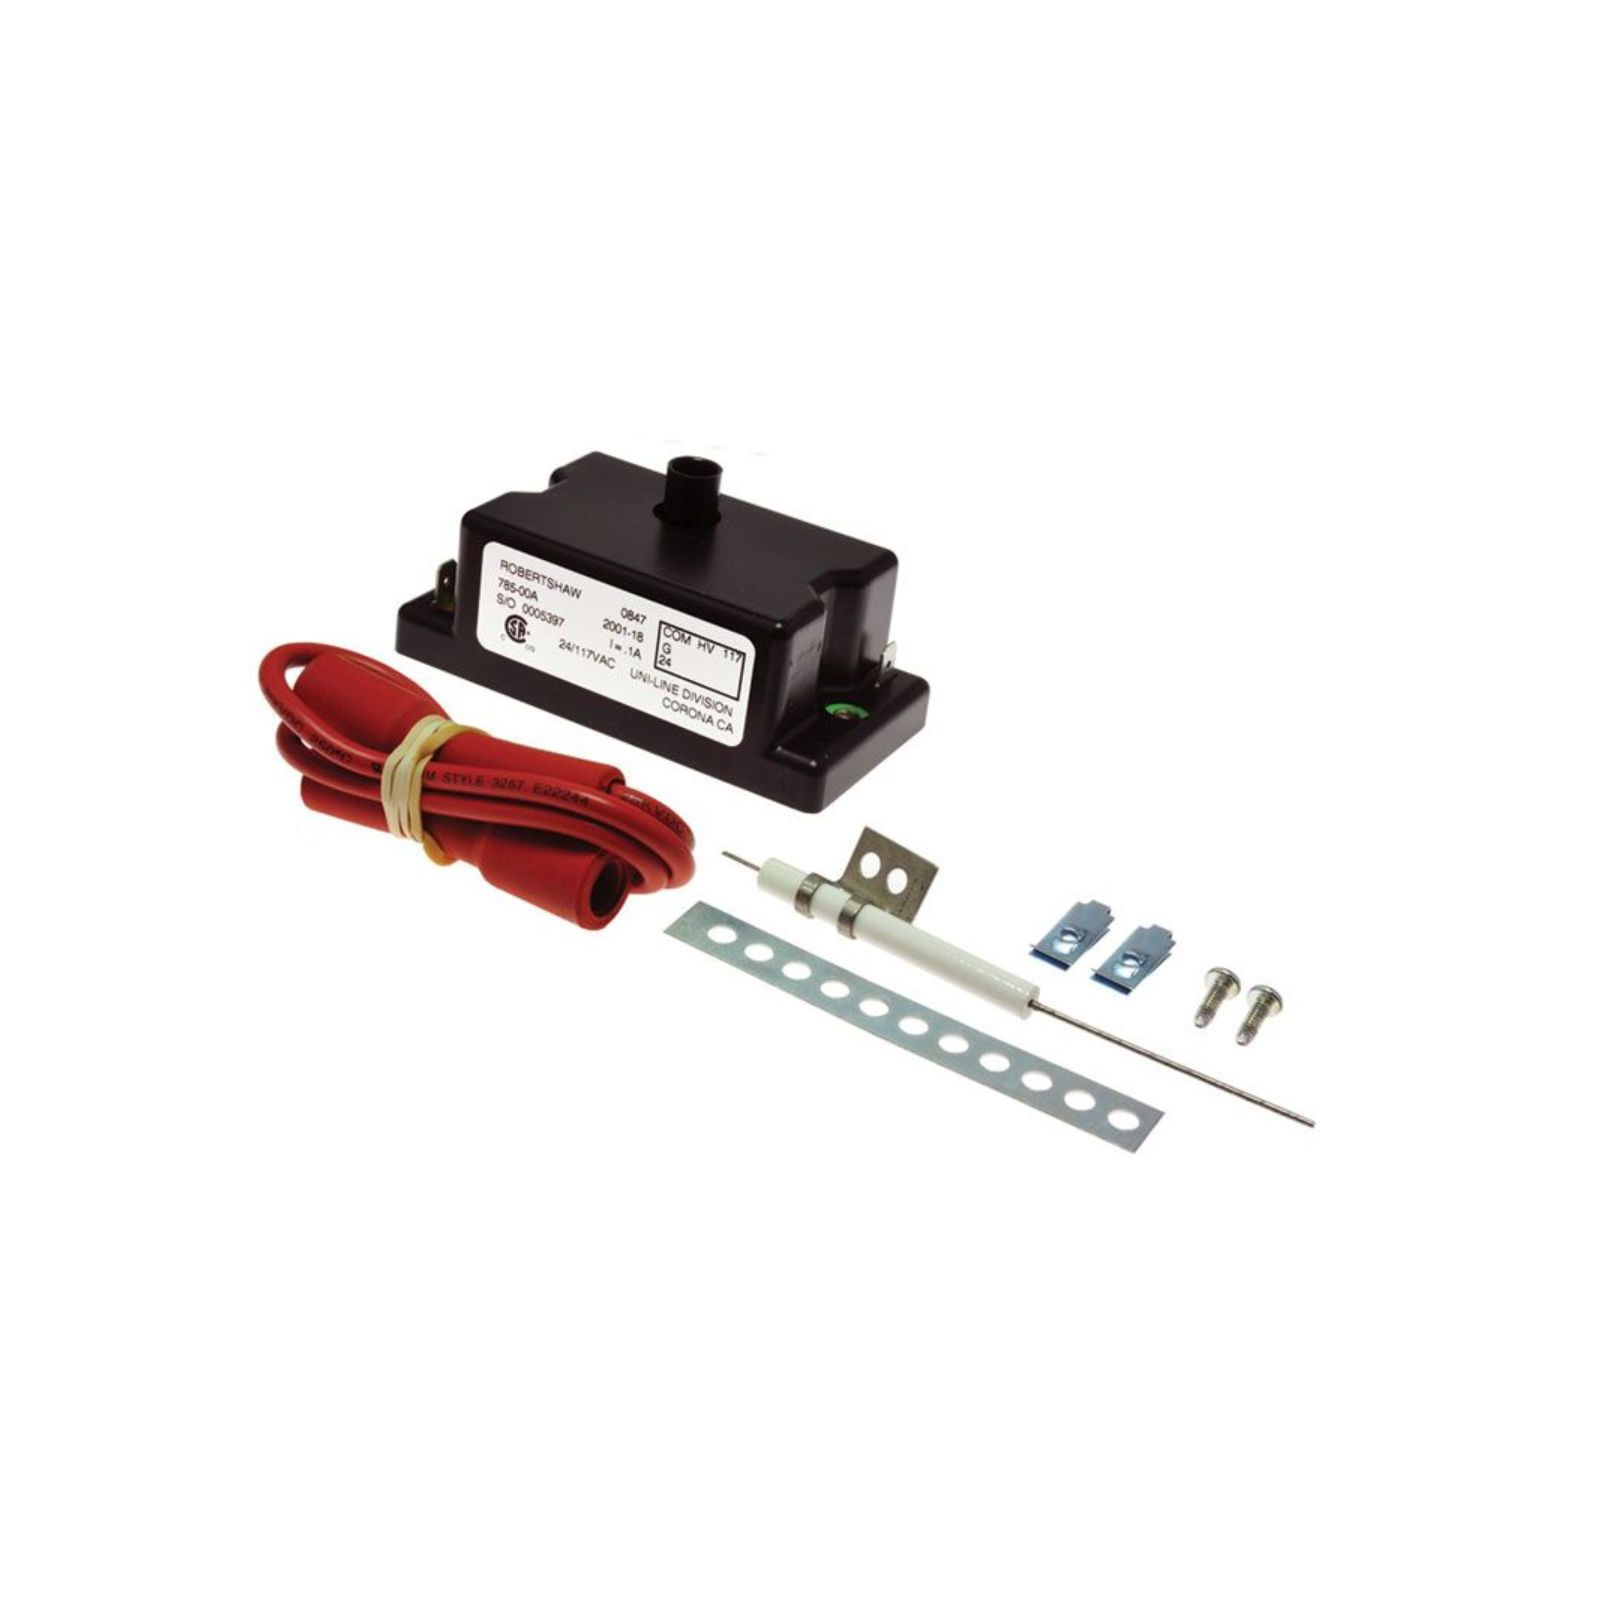 Robertshaw 625013 - Ignition Control Module - Intermittent Pilot